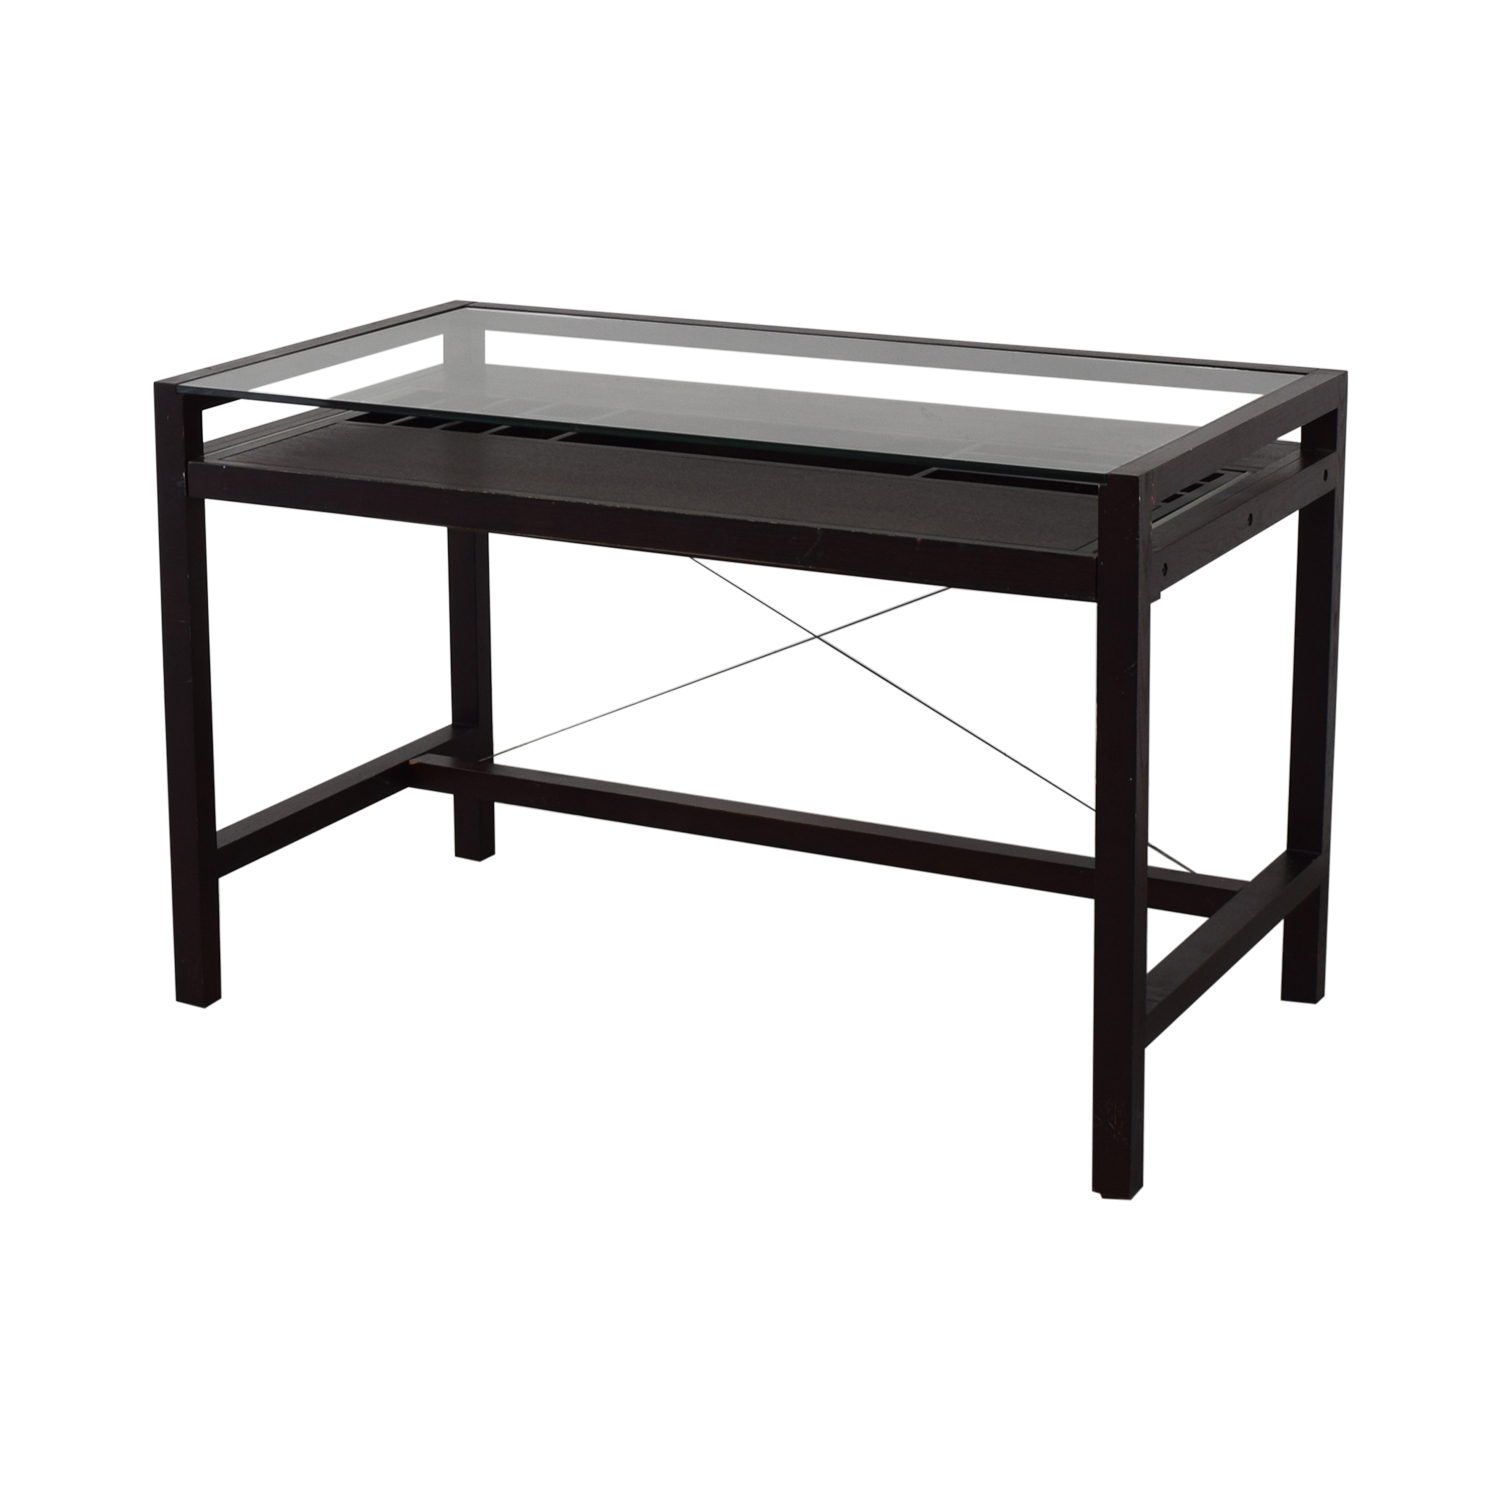 Crate & Barrel Crate & Barrel Glass and Wood Walker Desk for sale